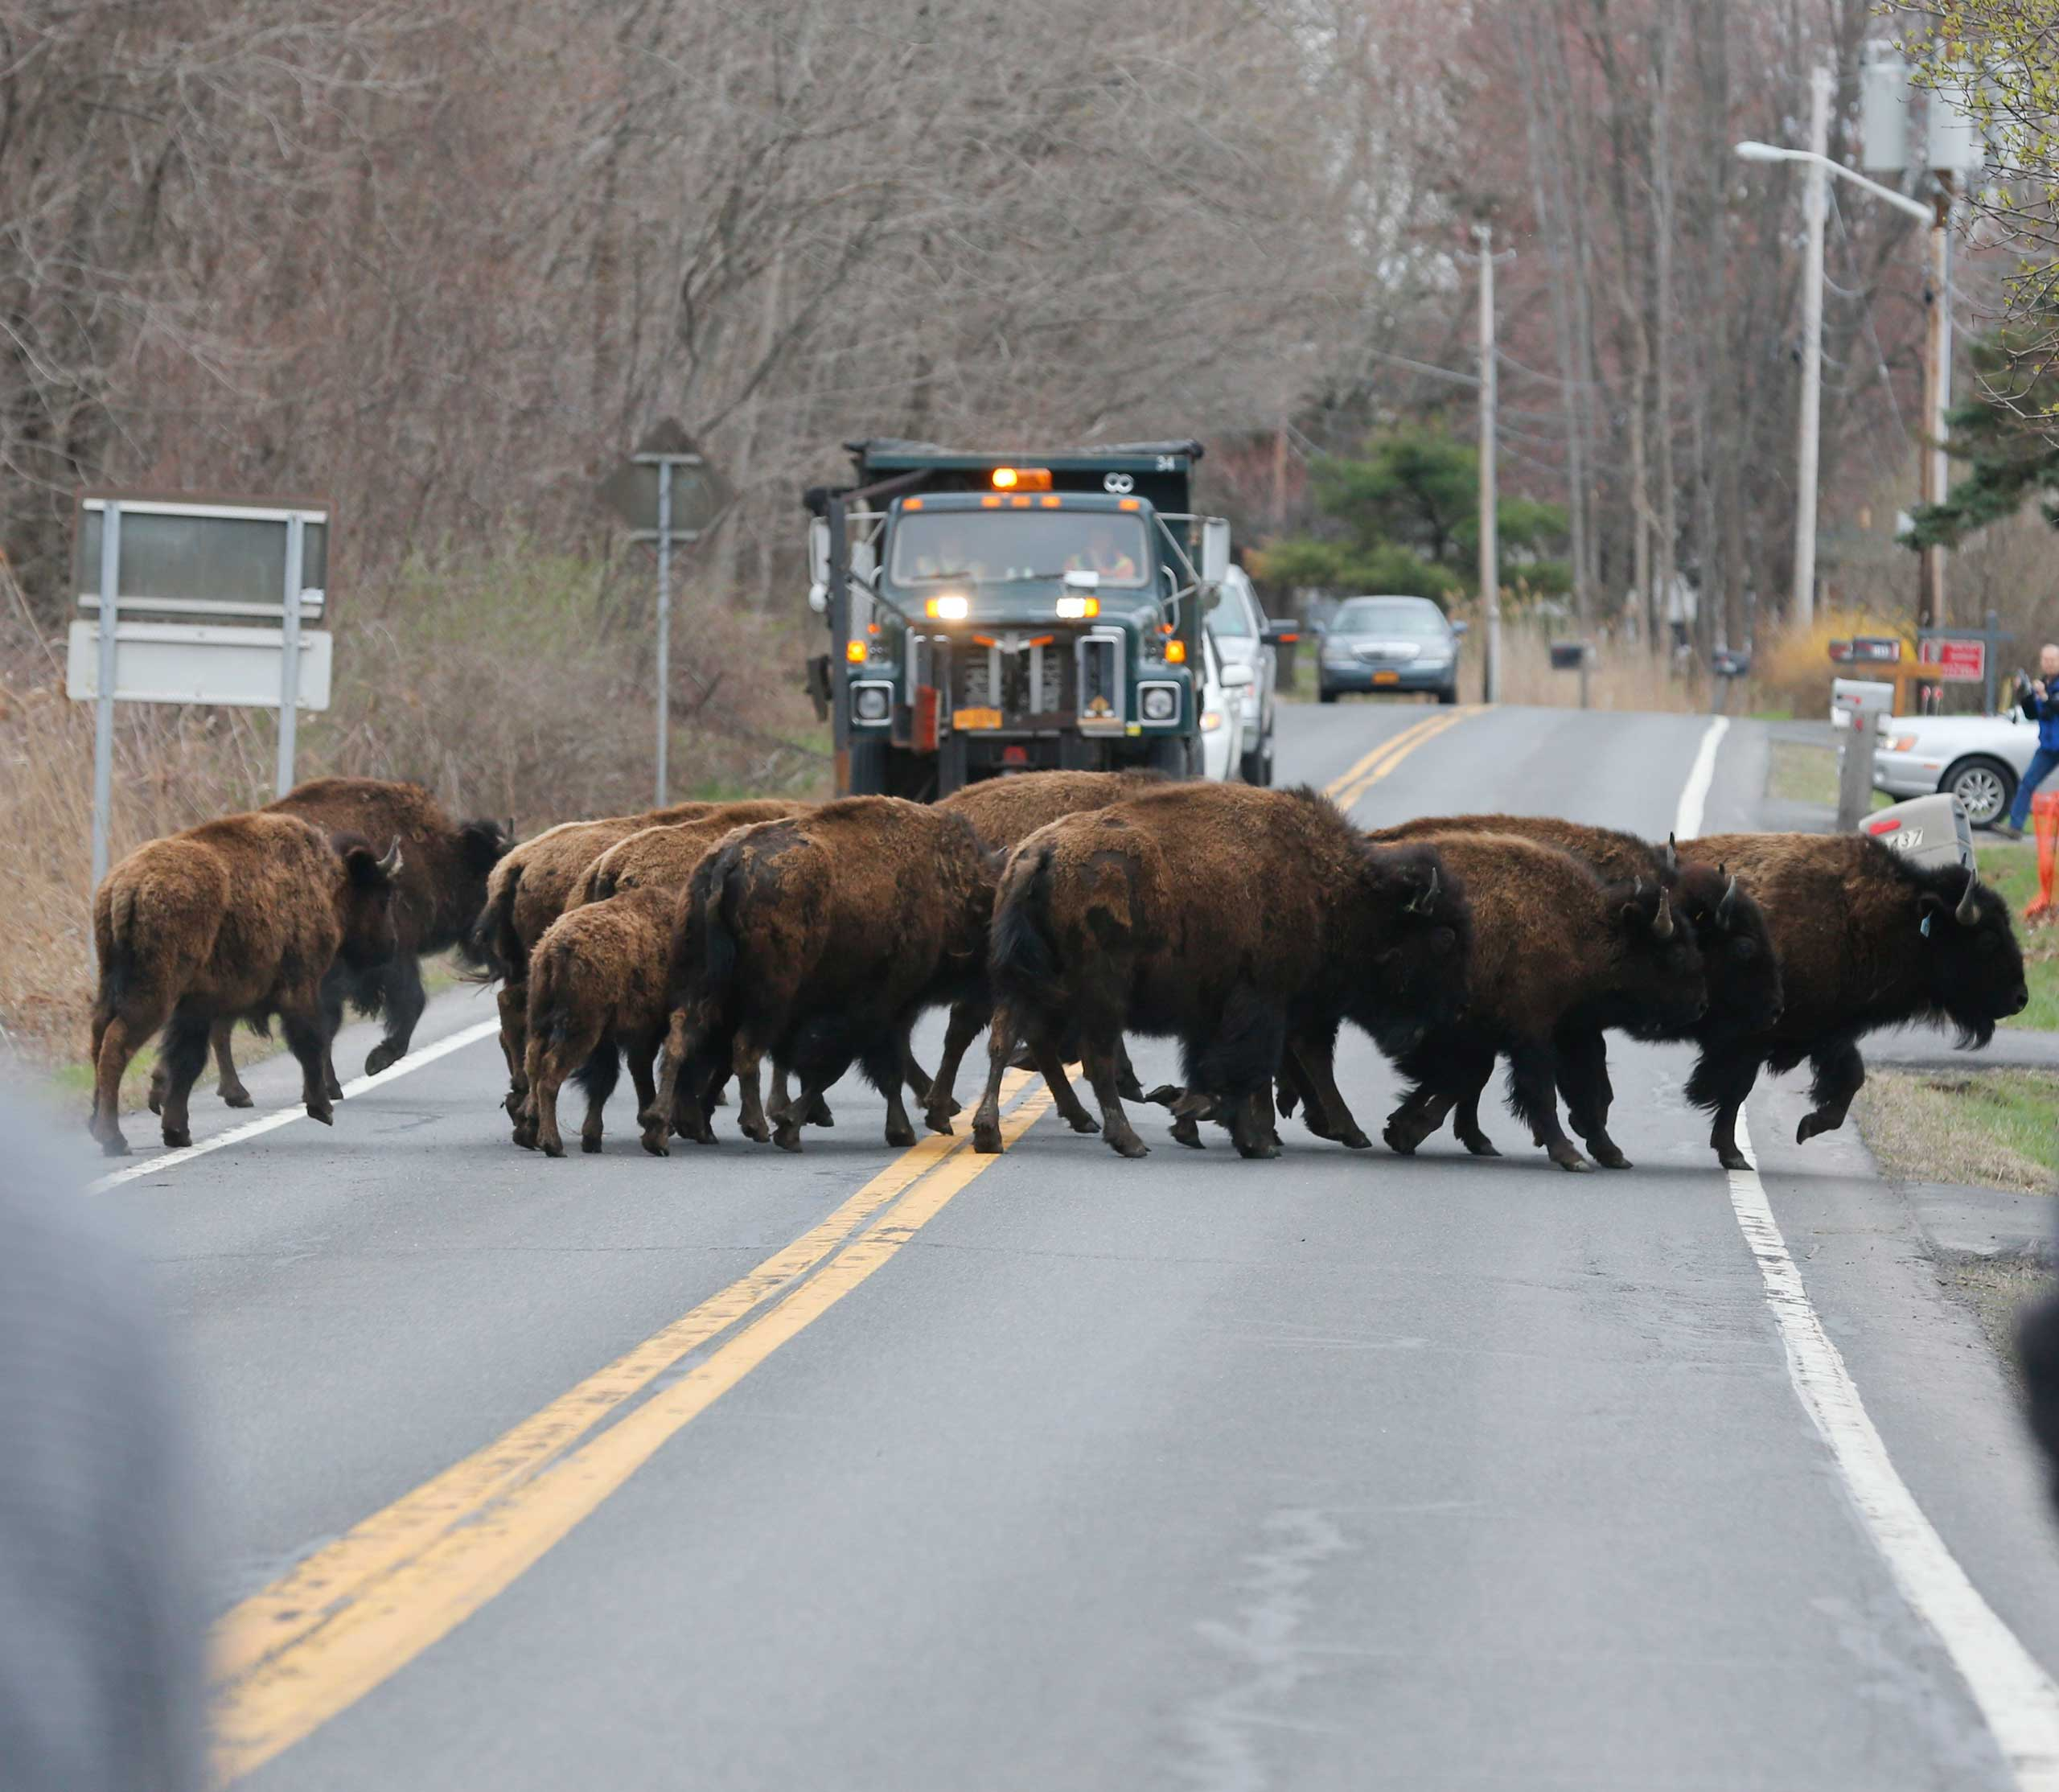 A herd of buffalo cross a road in Bethlehem, N.Y., on Apr. 24, 2015